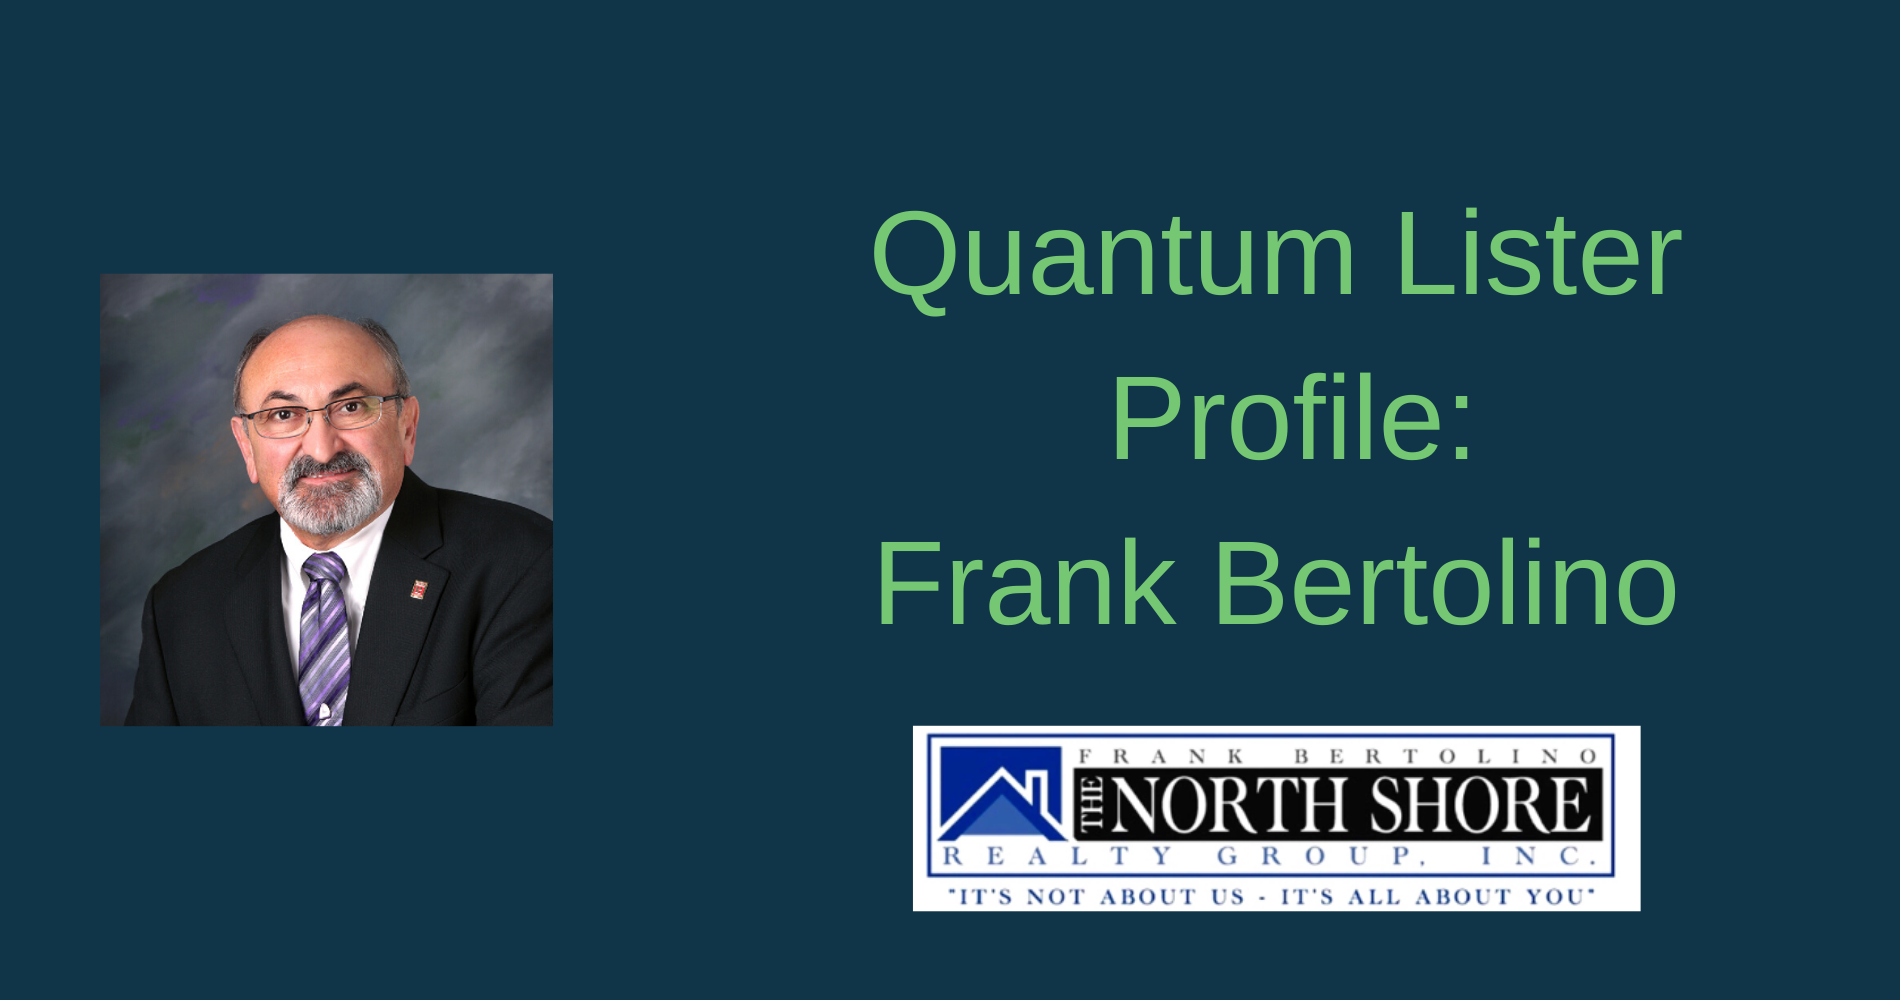 Quantum Lister Profile : Frank Bertolino of The North Shore Realty Group